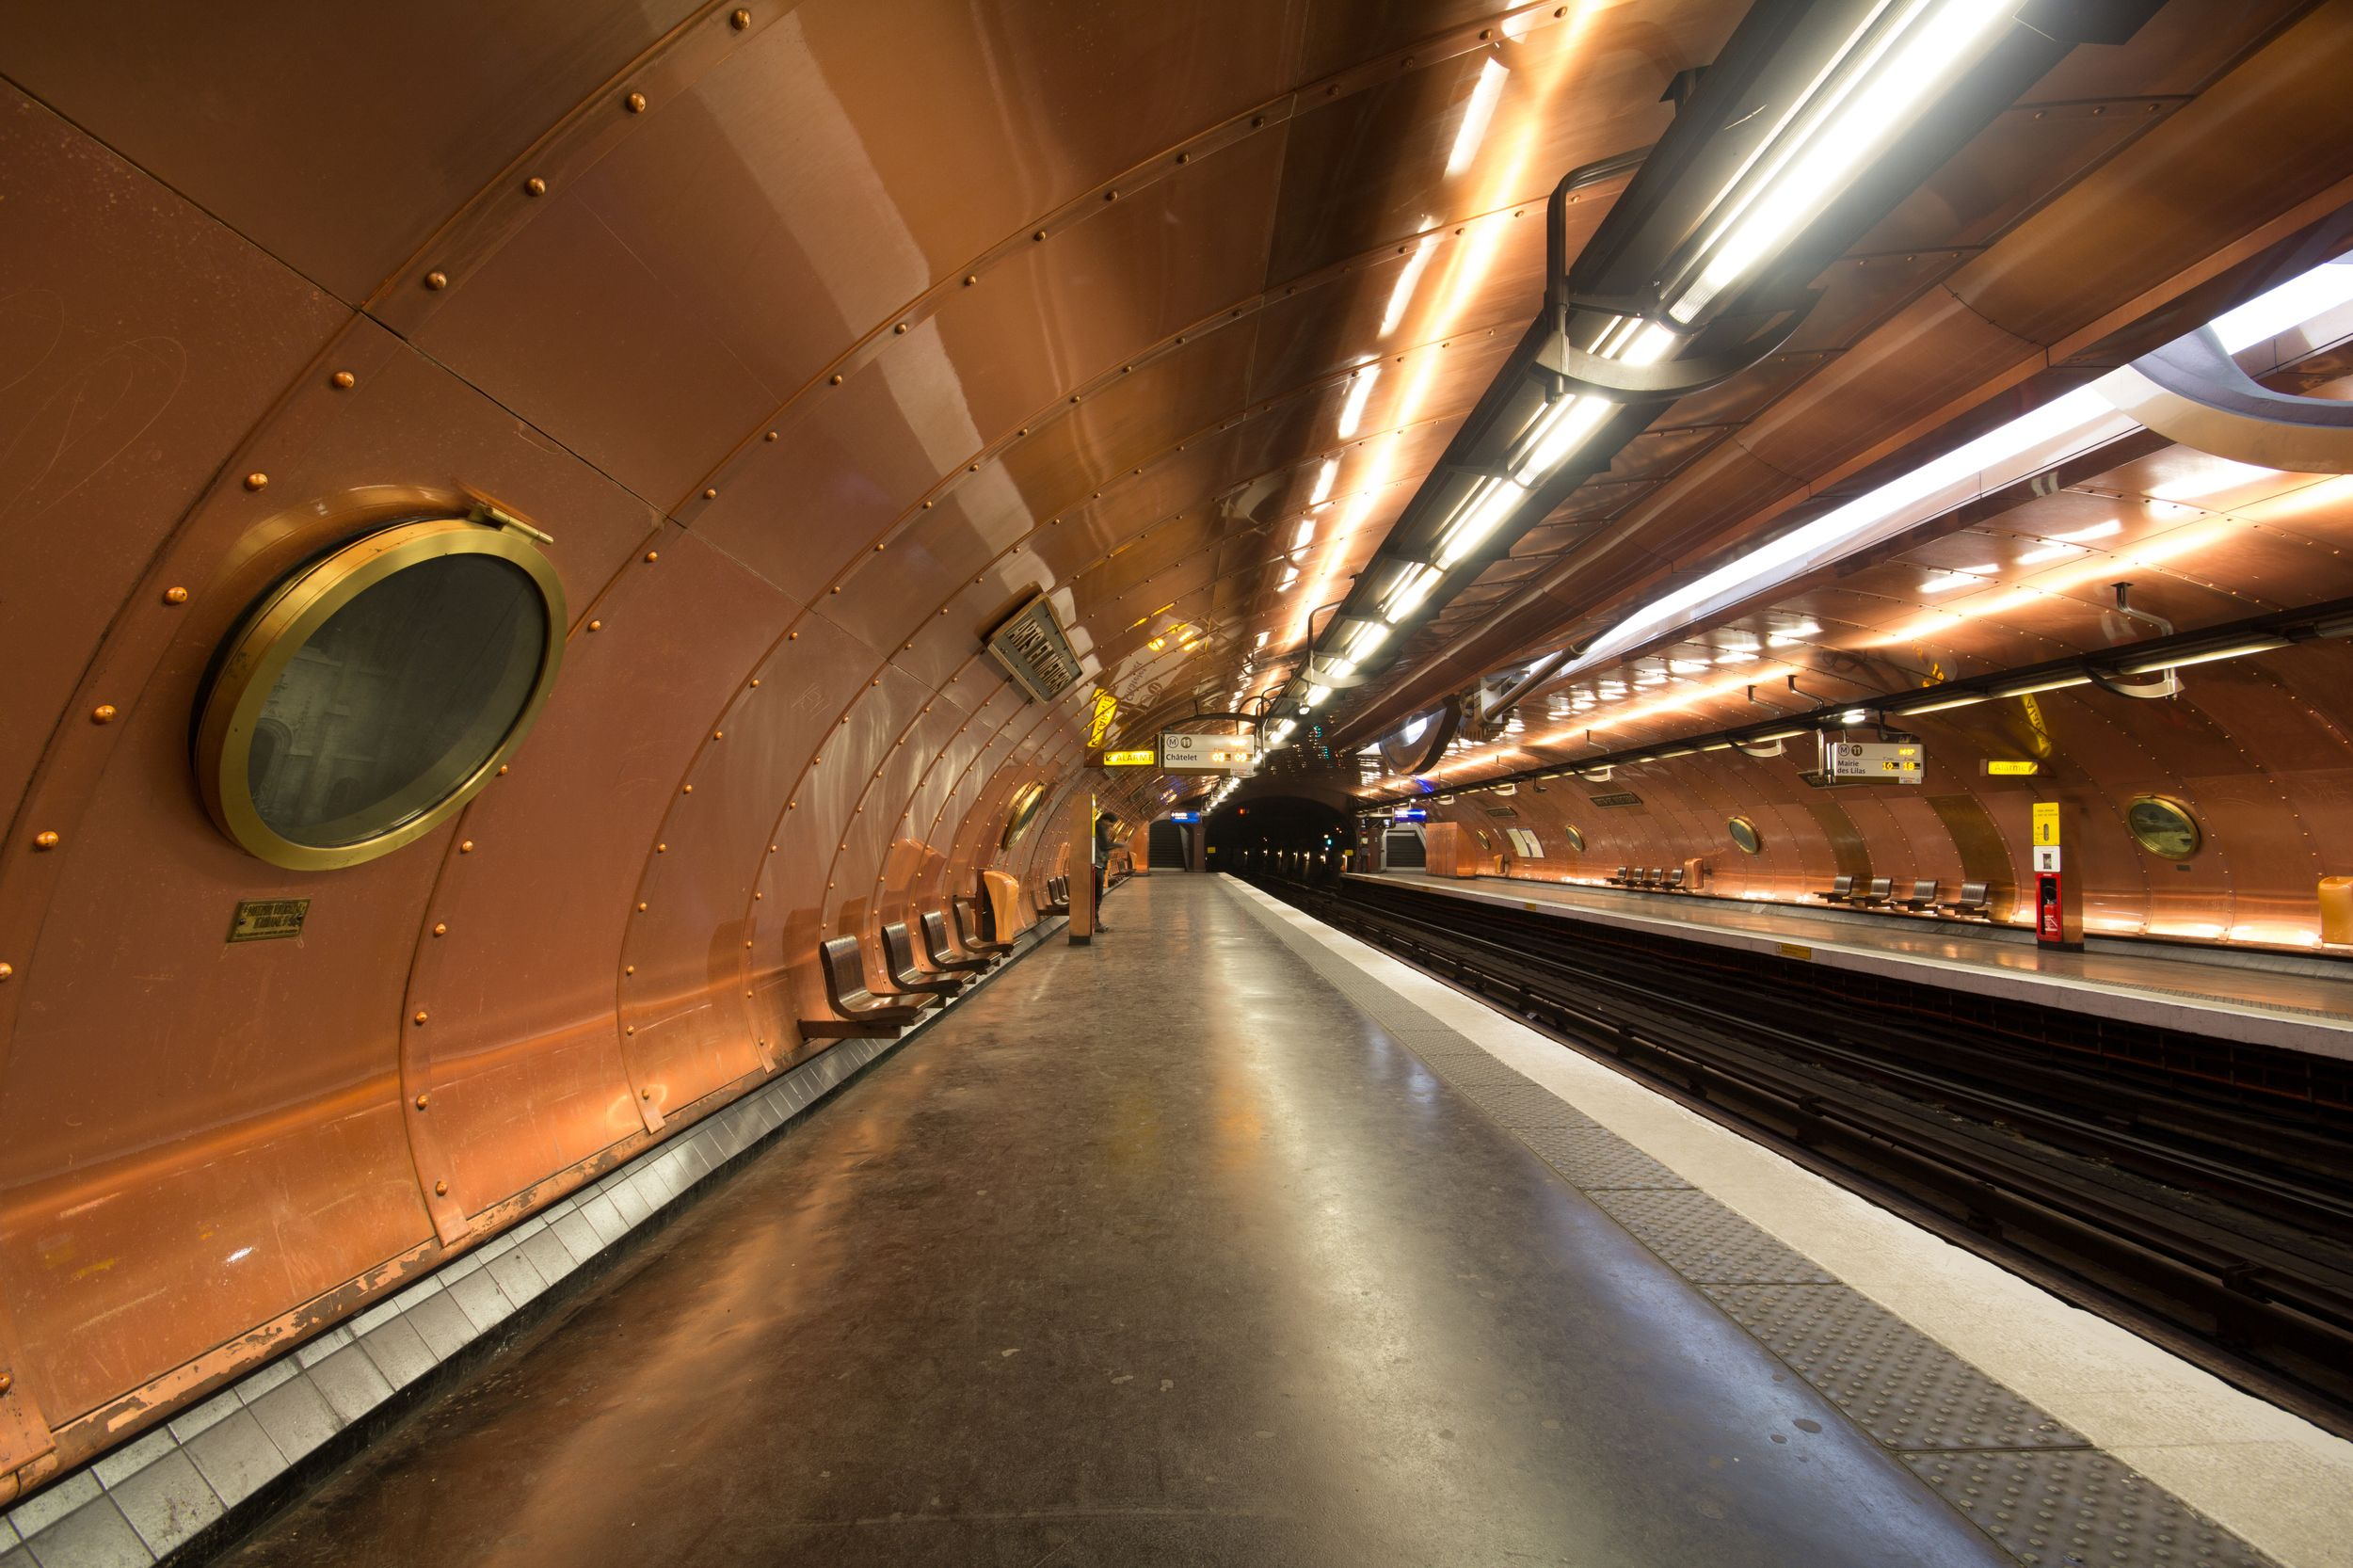 Elegant Get Lost In The Imaginary World Of Jules Verne At The Arts Et Métiers  Station In